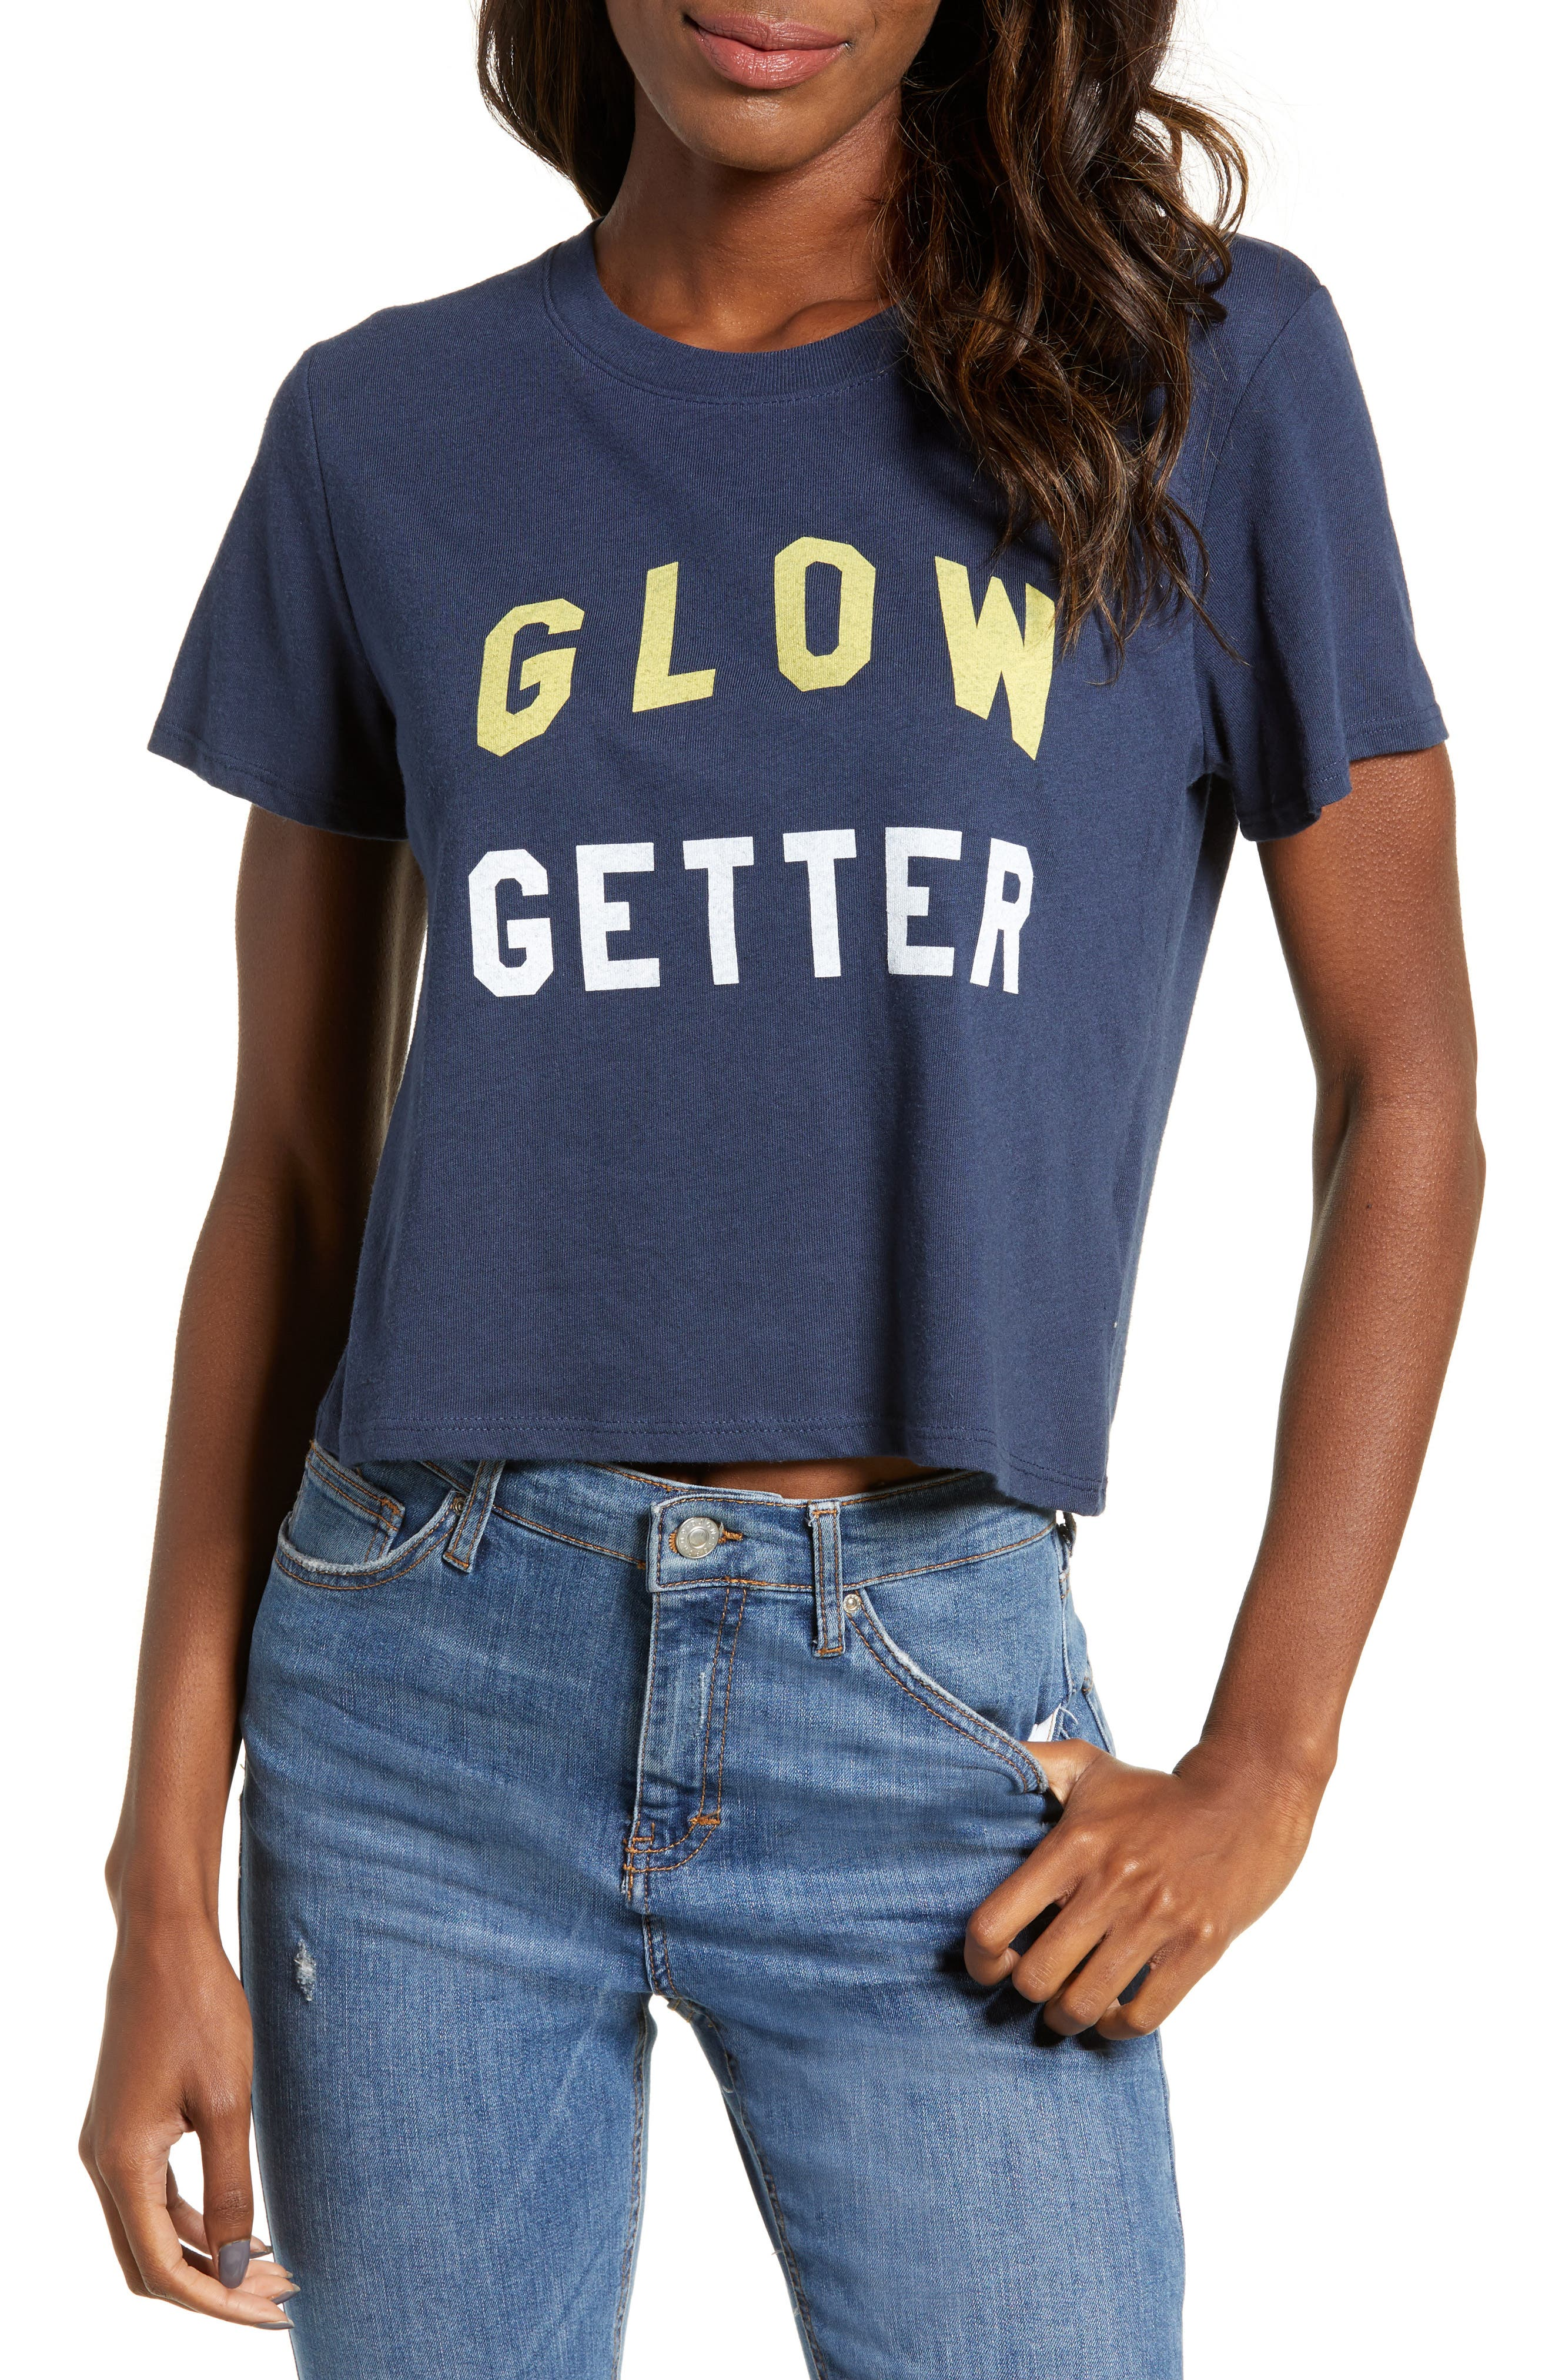 SUB_URBAN RIOT Glow Getter Dylan Tee in French Navy